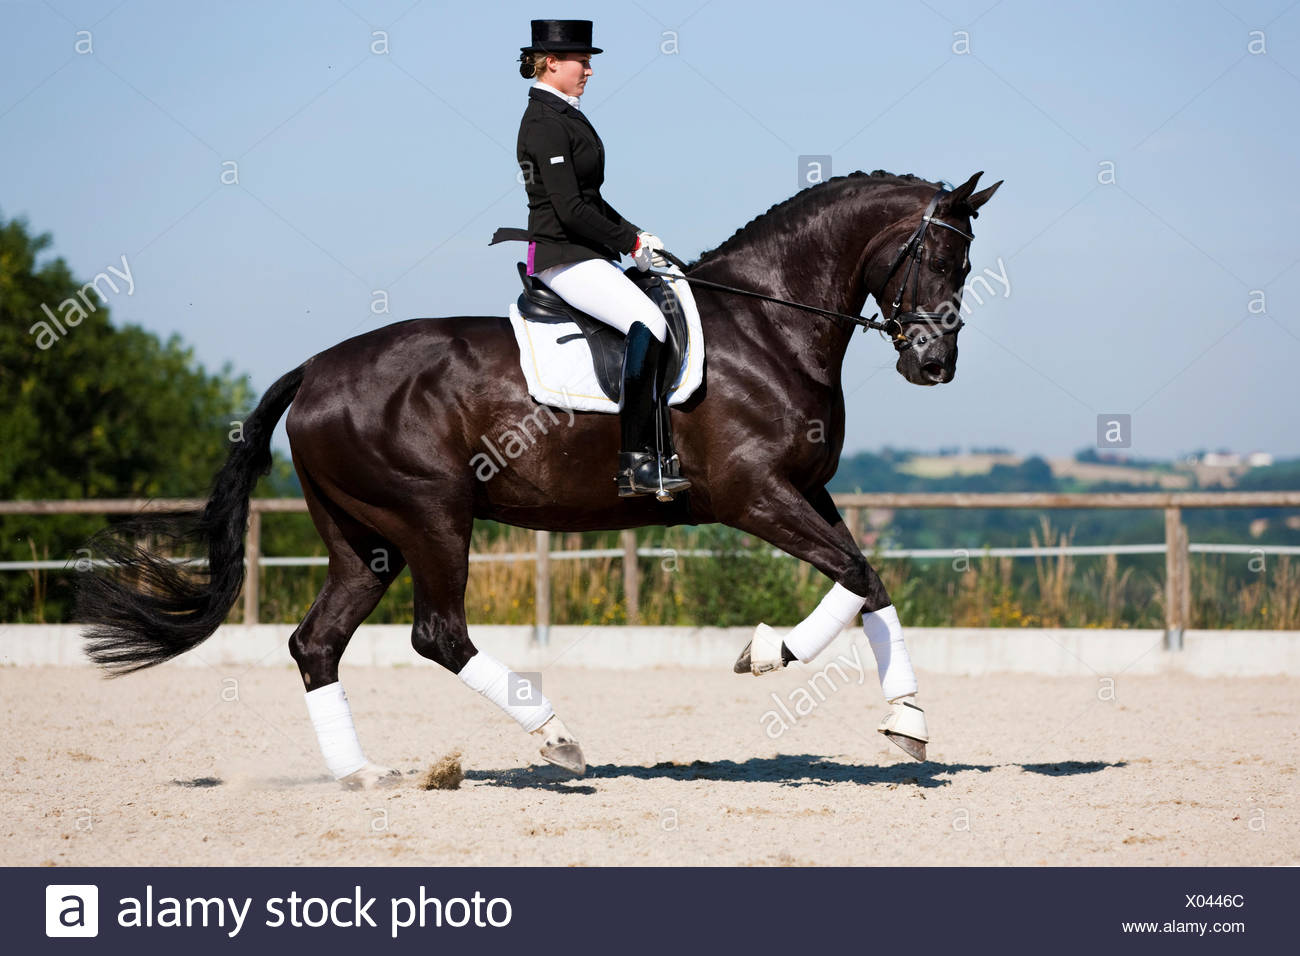 Young Woman In A Formal Riding Dress Riding A Galloping Hanoverian Horse Dressage Black Horse Austria Stock Photo Alamy